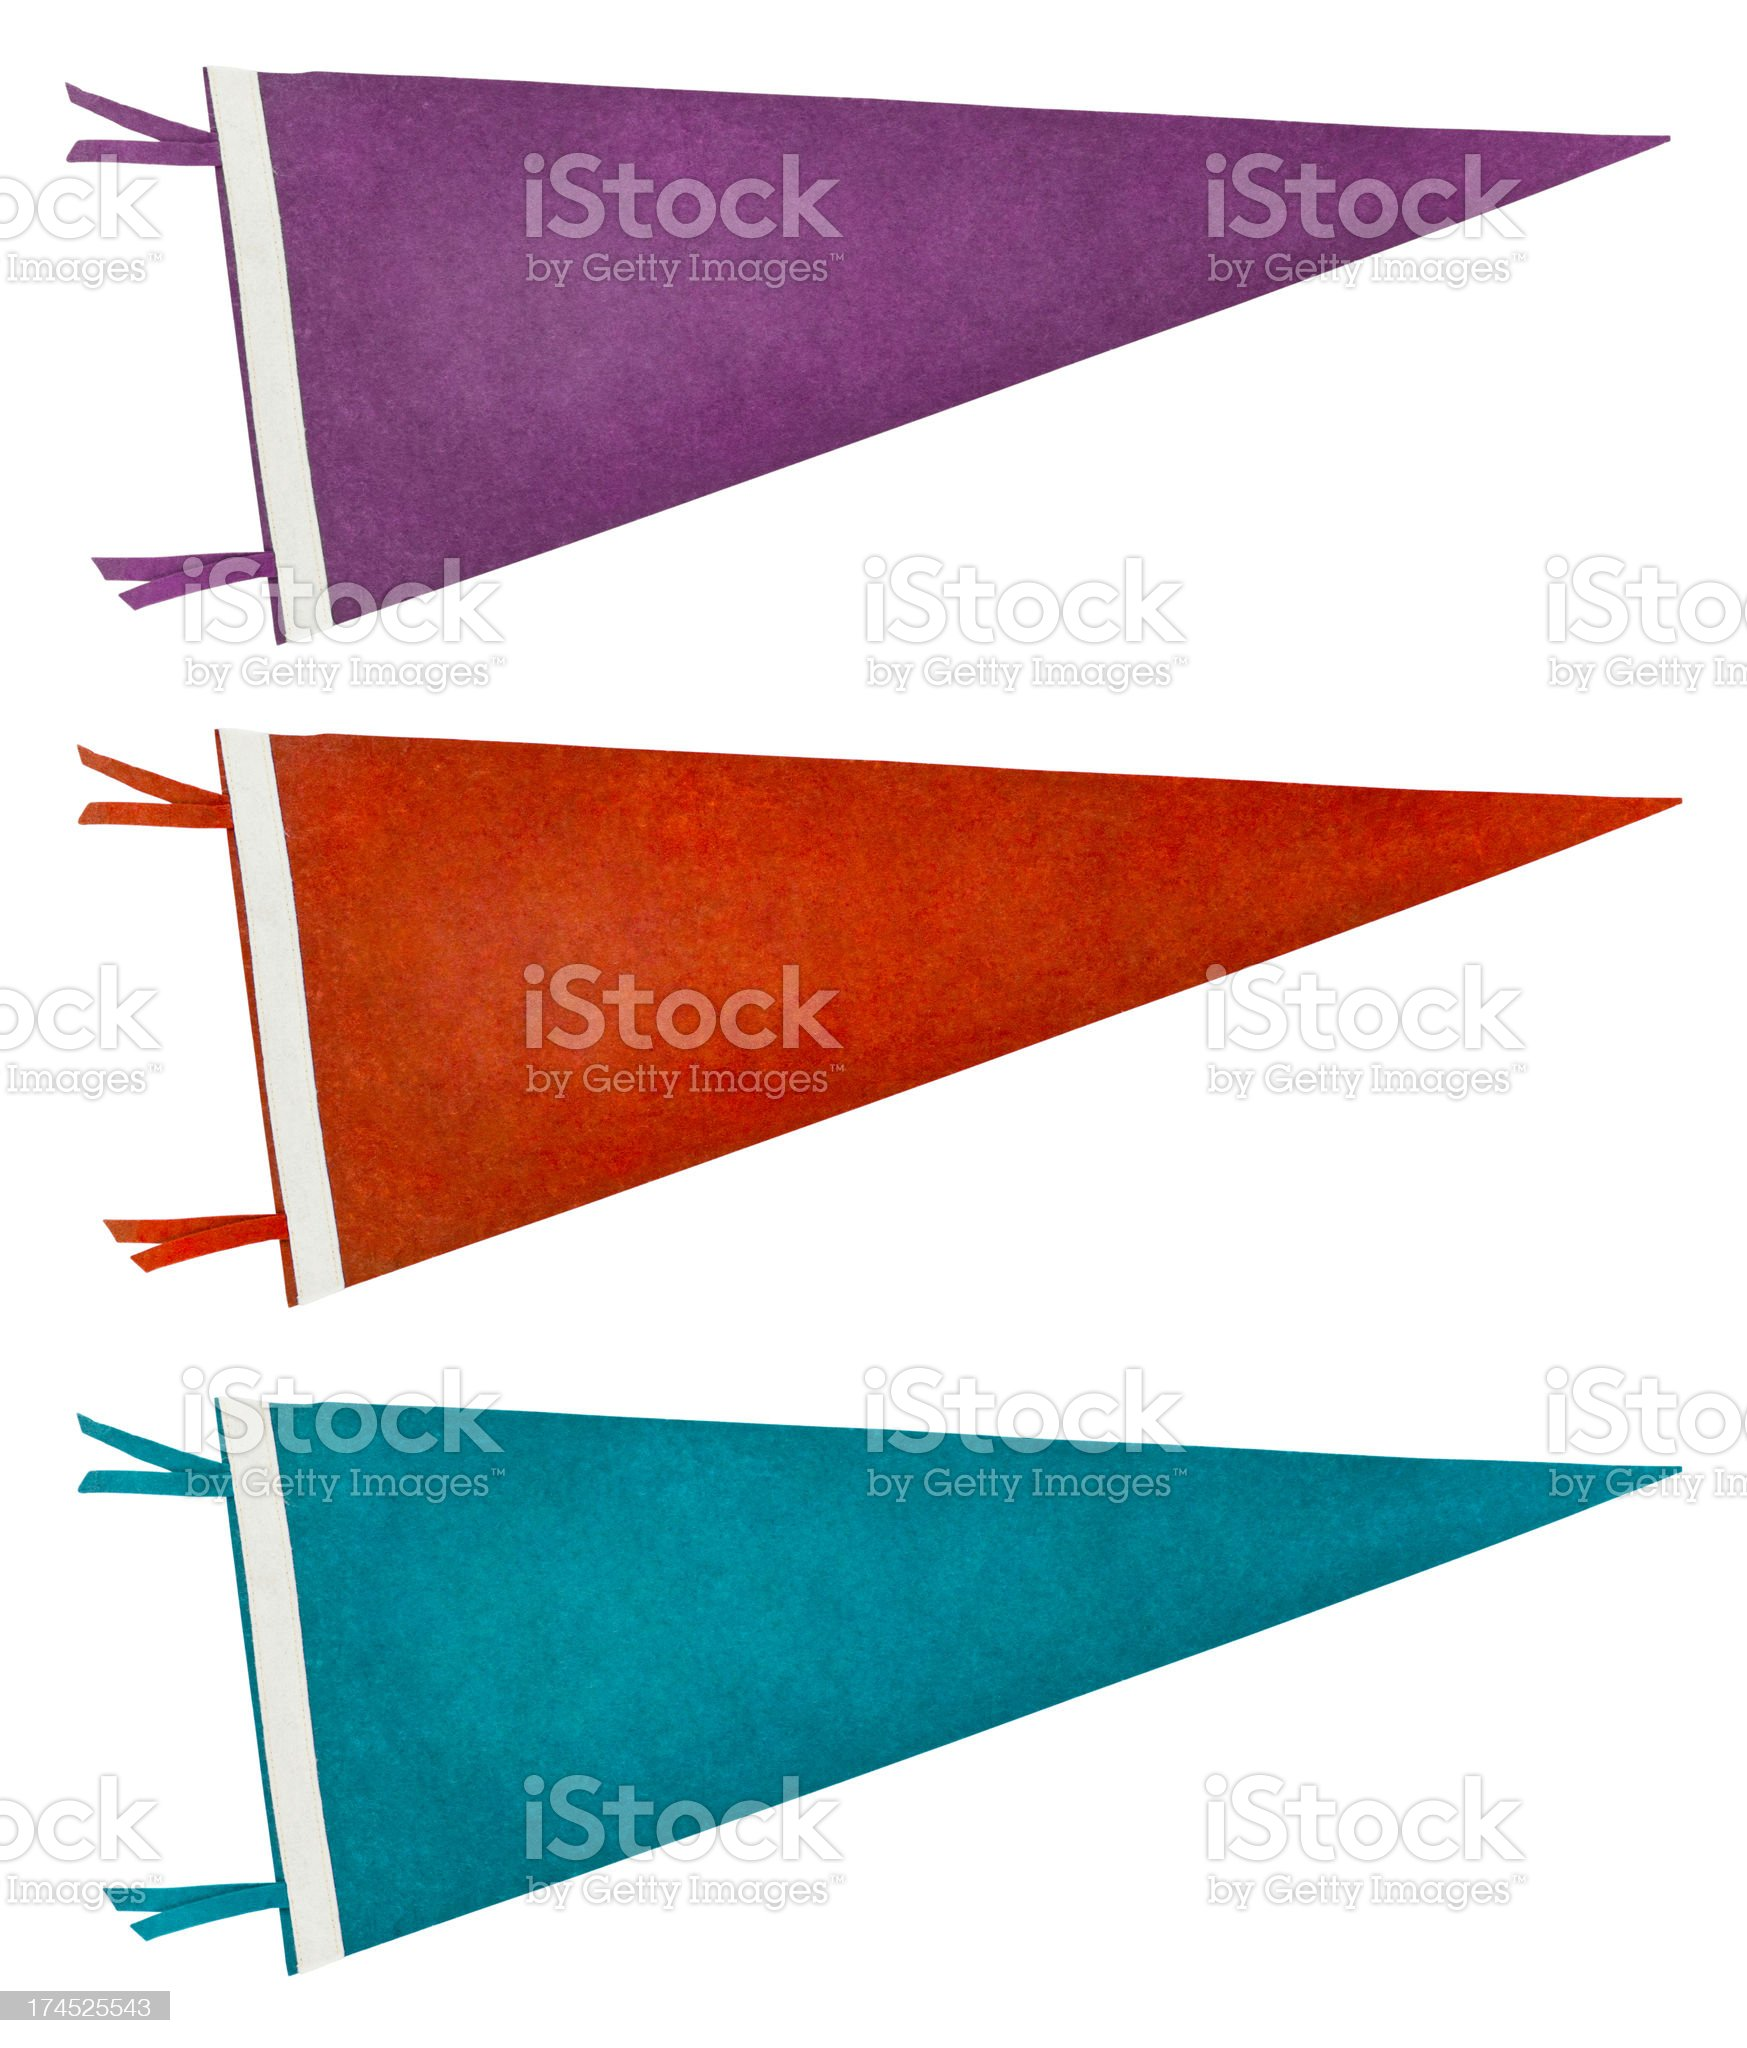 Three Retro Pennants (Isolated on White) royalty-free stock photo